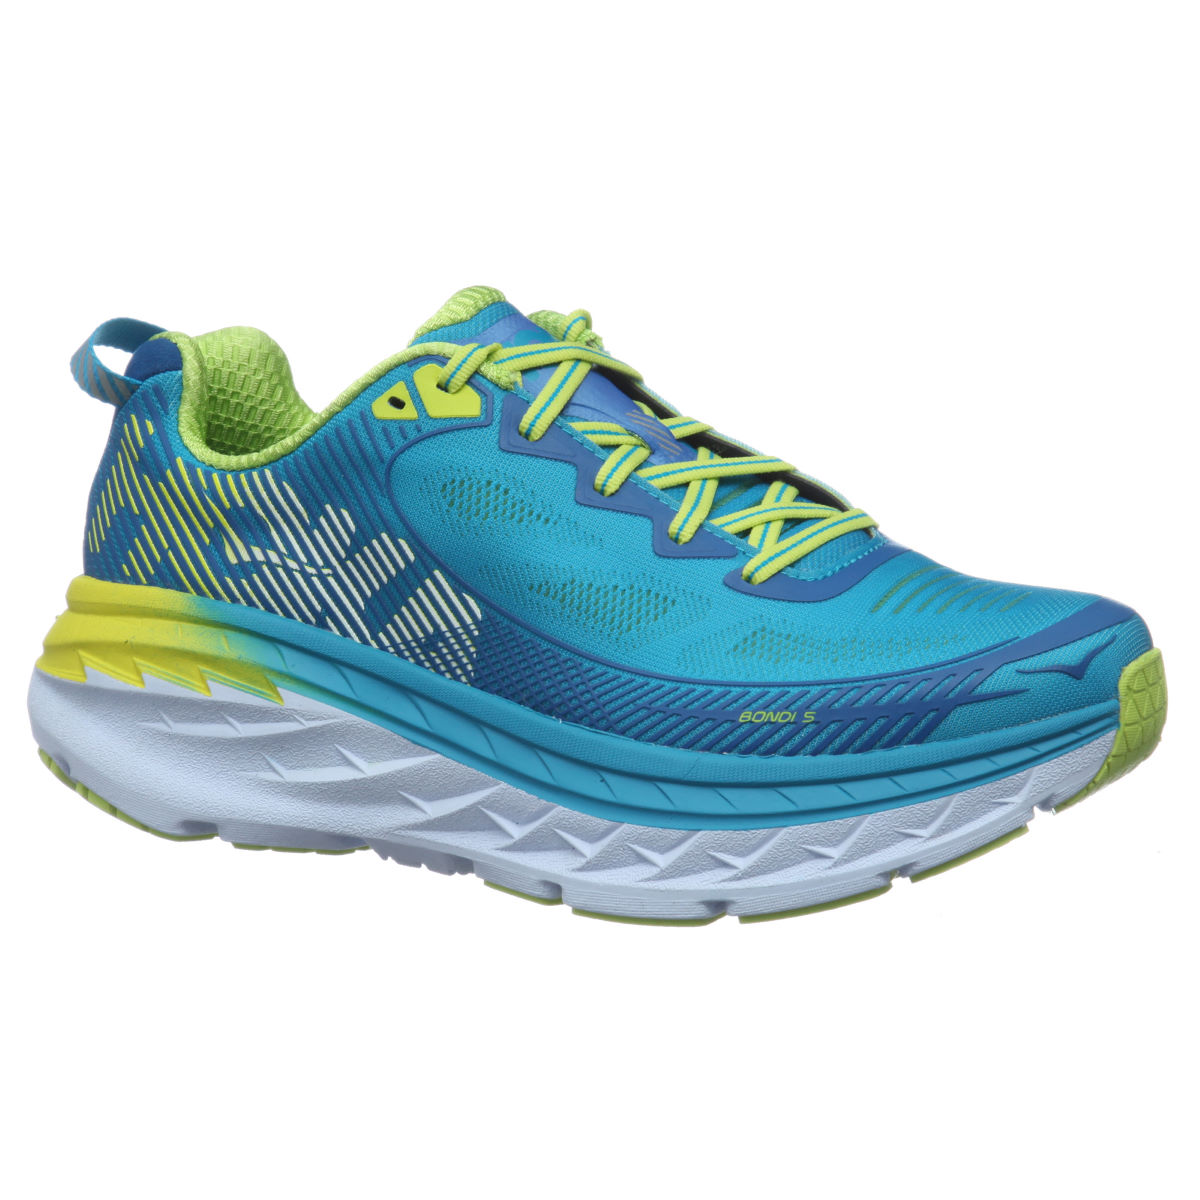 Chaussures Femme Hoka One One Bondi 5 - UK 5 Blue/Yellow